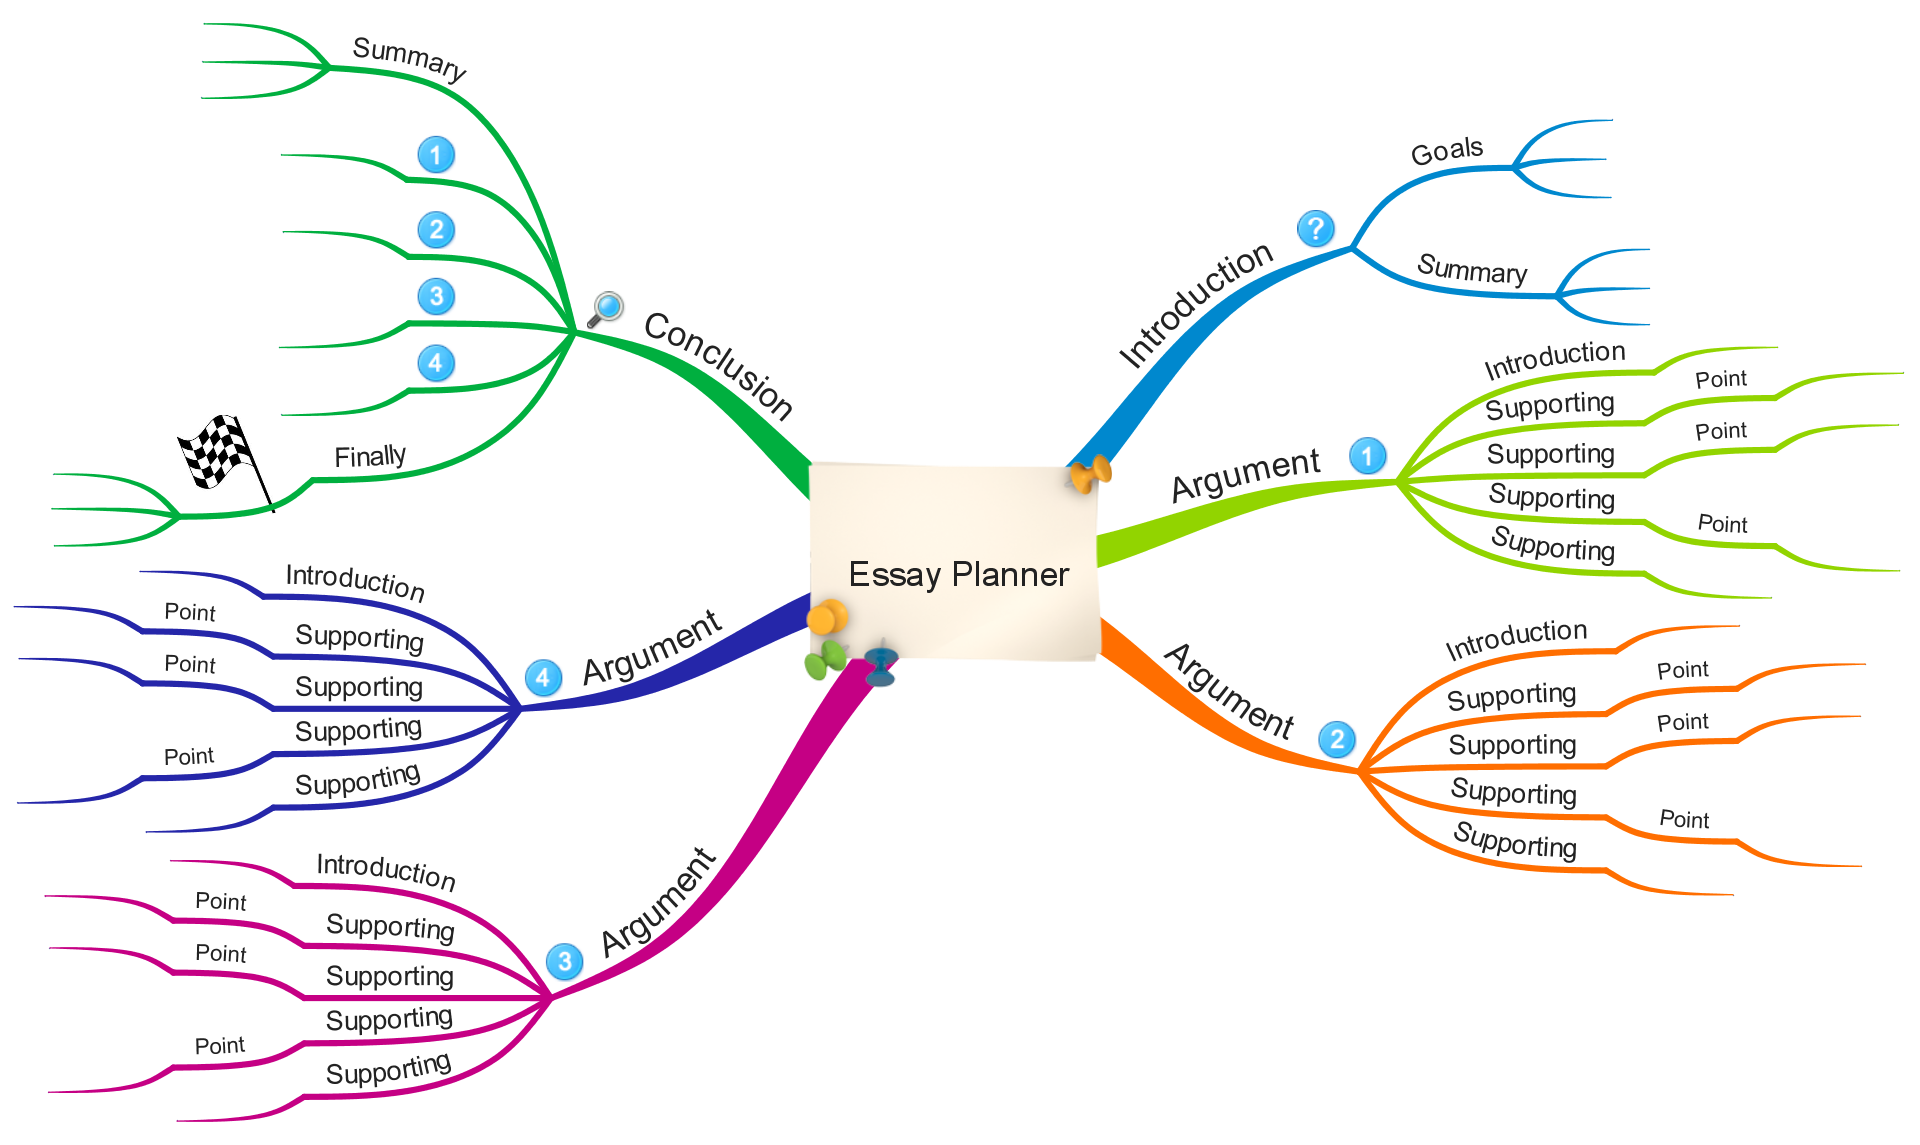 education example mind maps mind mapping essay planner view